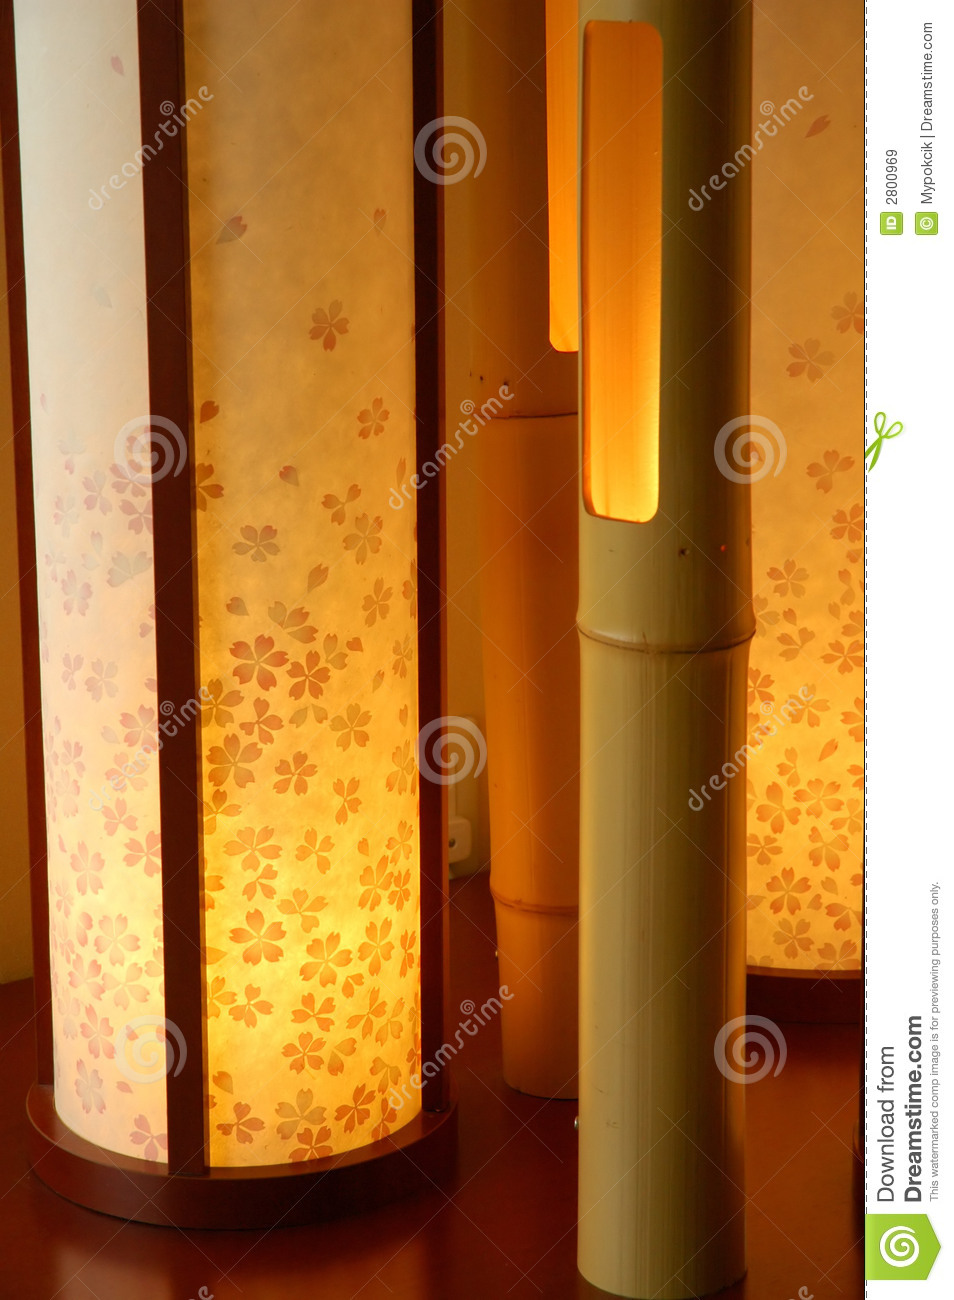 Japanese Interior Lamp Royalty Free Stock Images Image